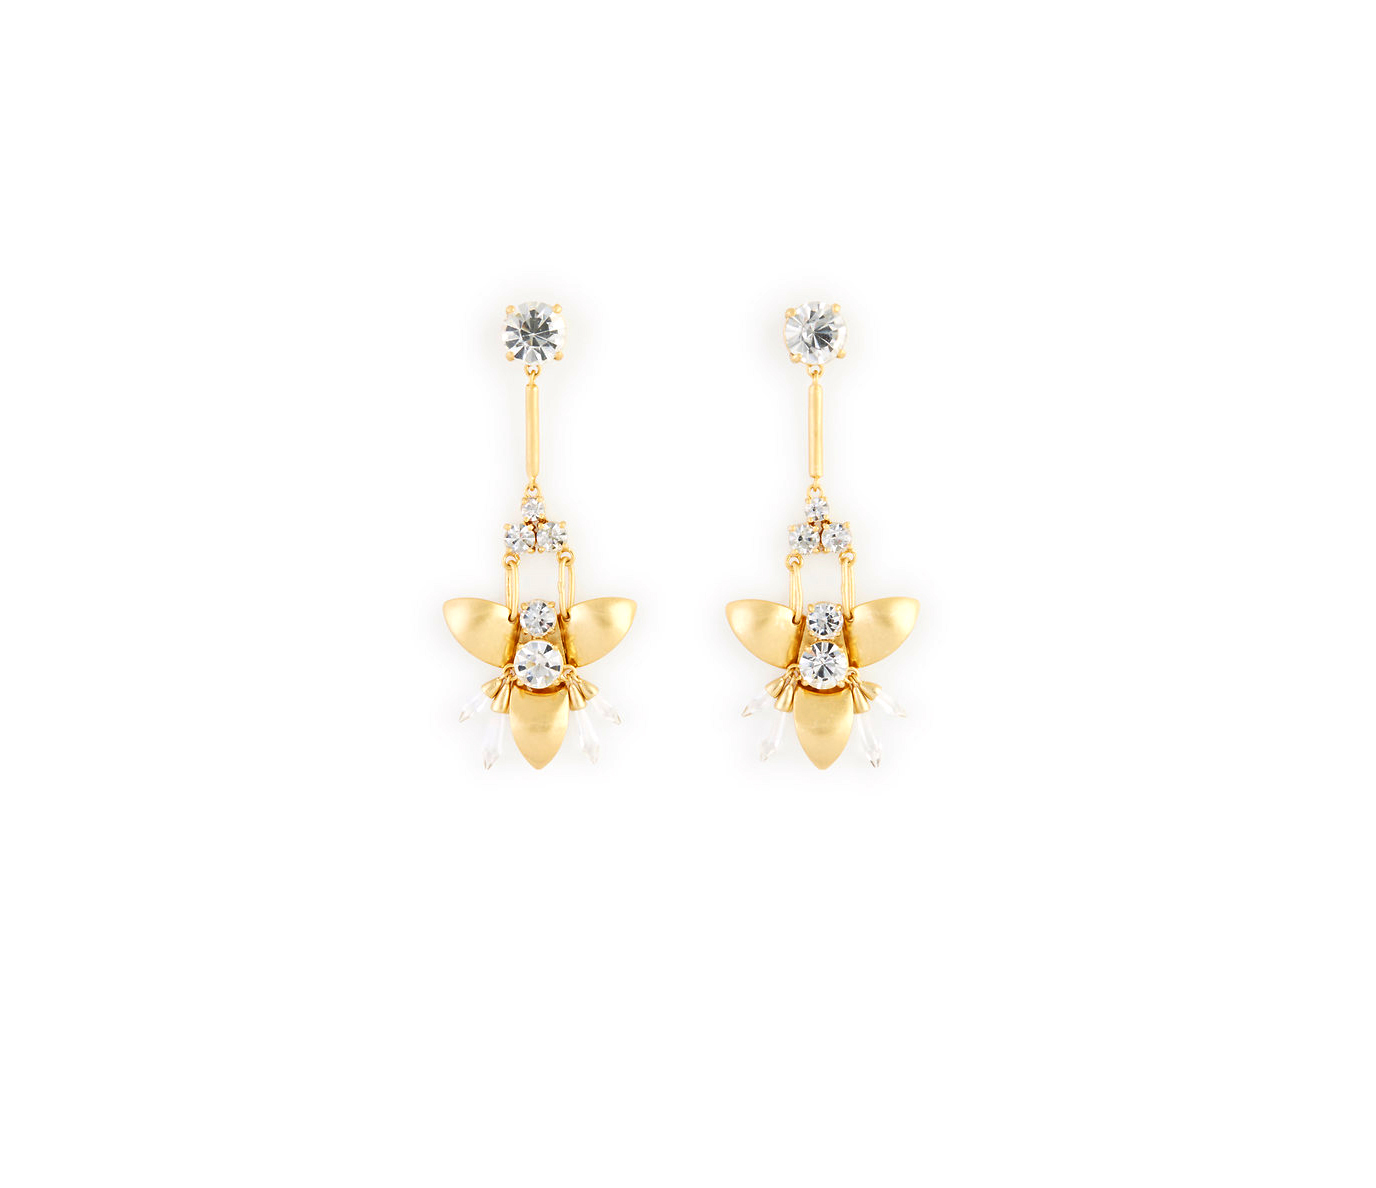 Abstract Floral Chandelier Earrings